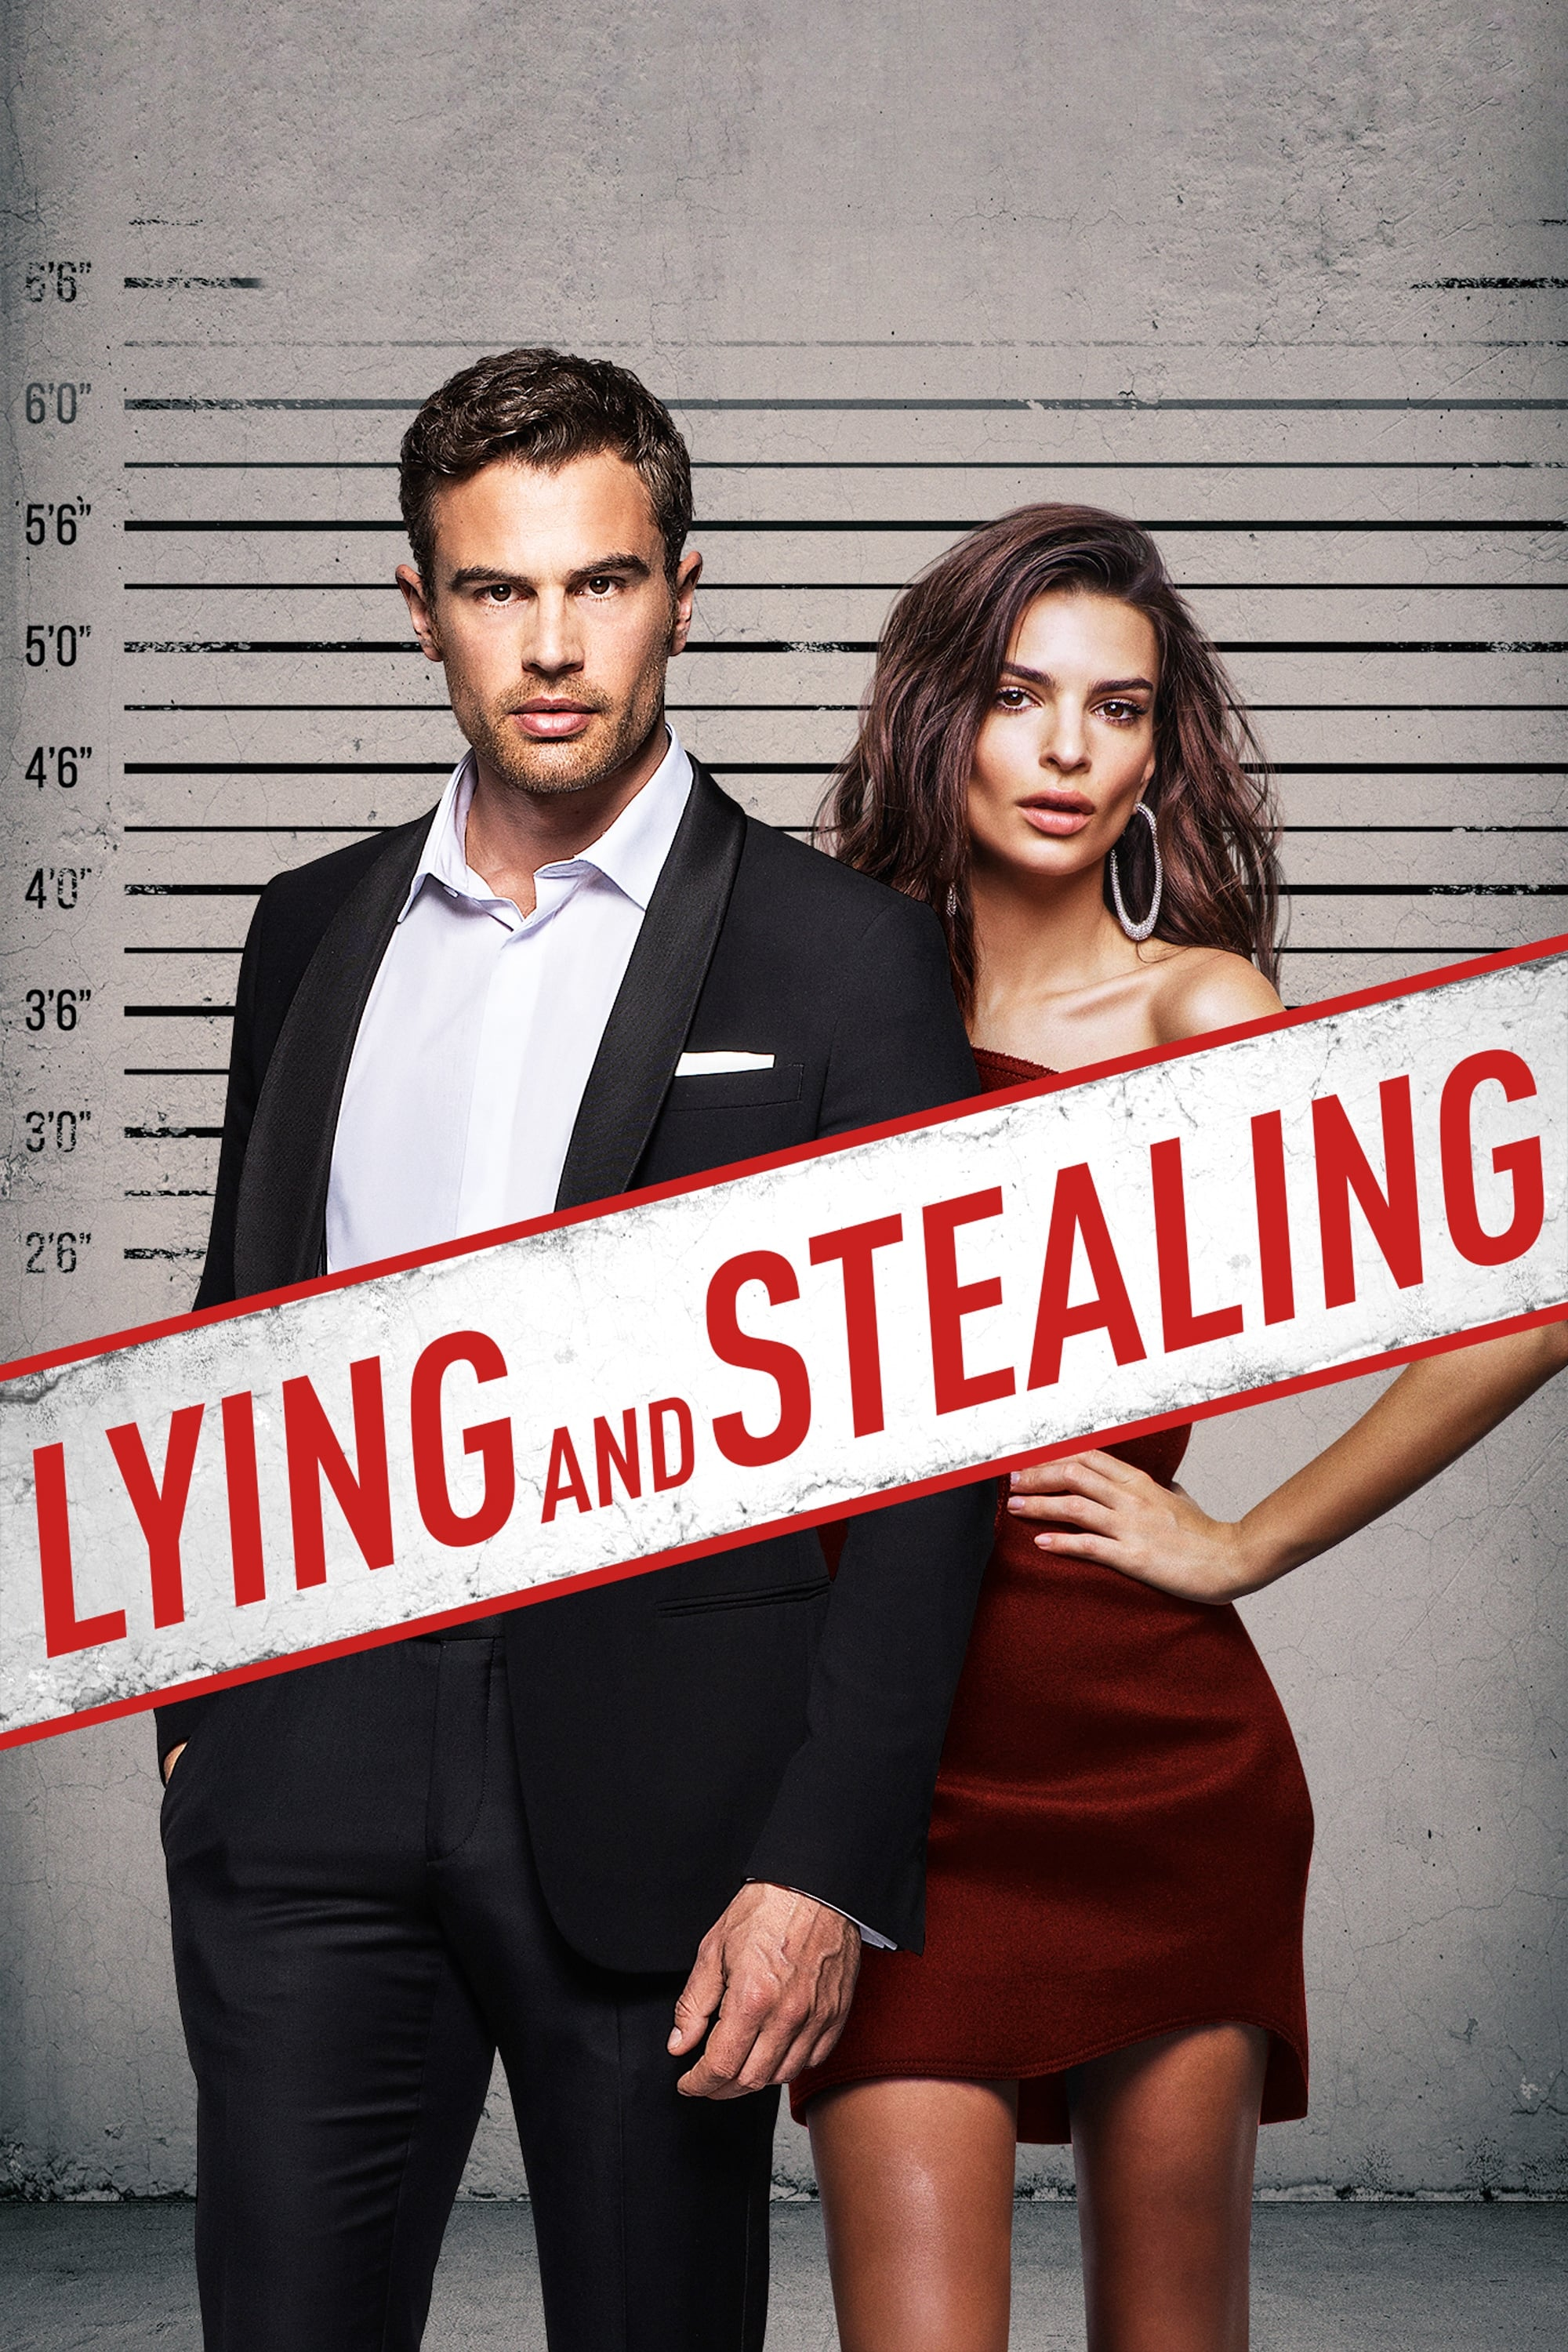 Lying and Stealing 2019 hollywood crime comedy